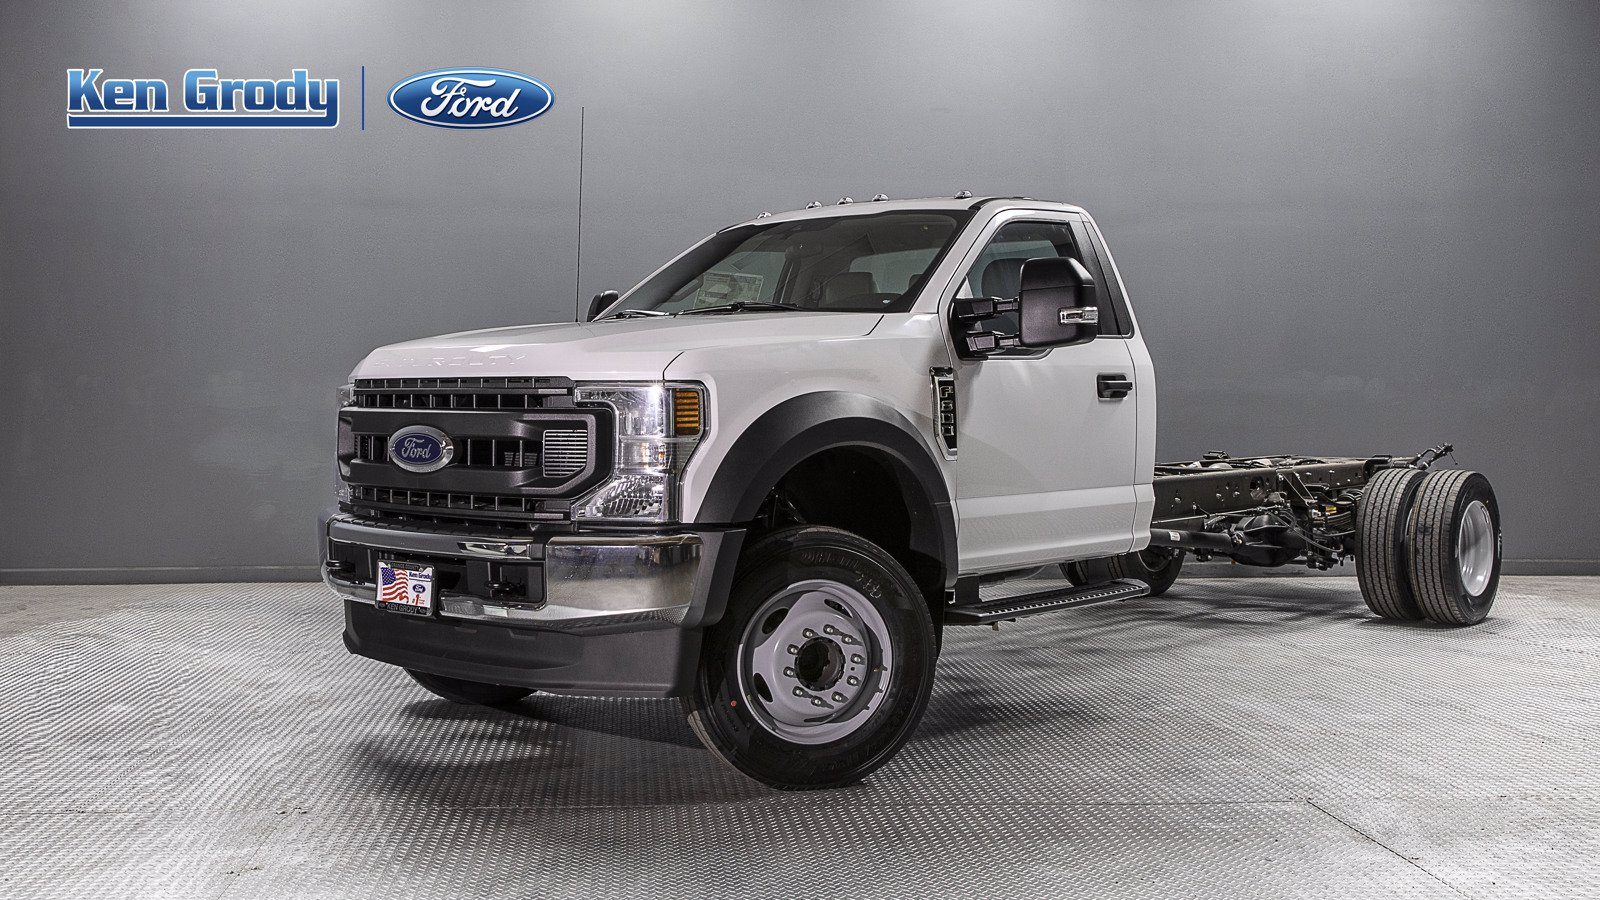 2020 Ford F-600 Regular Cab DRW 4x2, Cab Chassis #04210 - photo 1